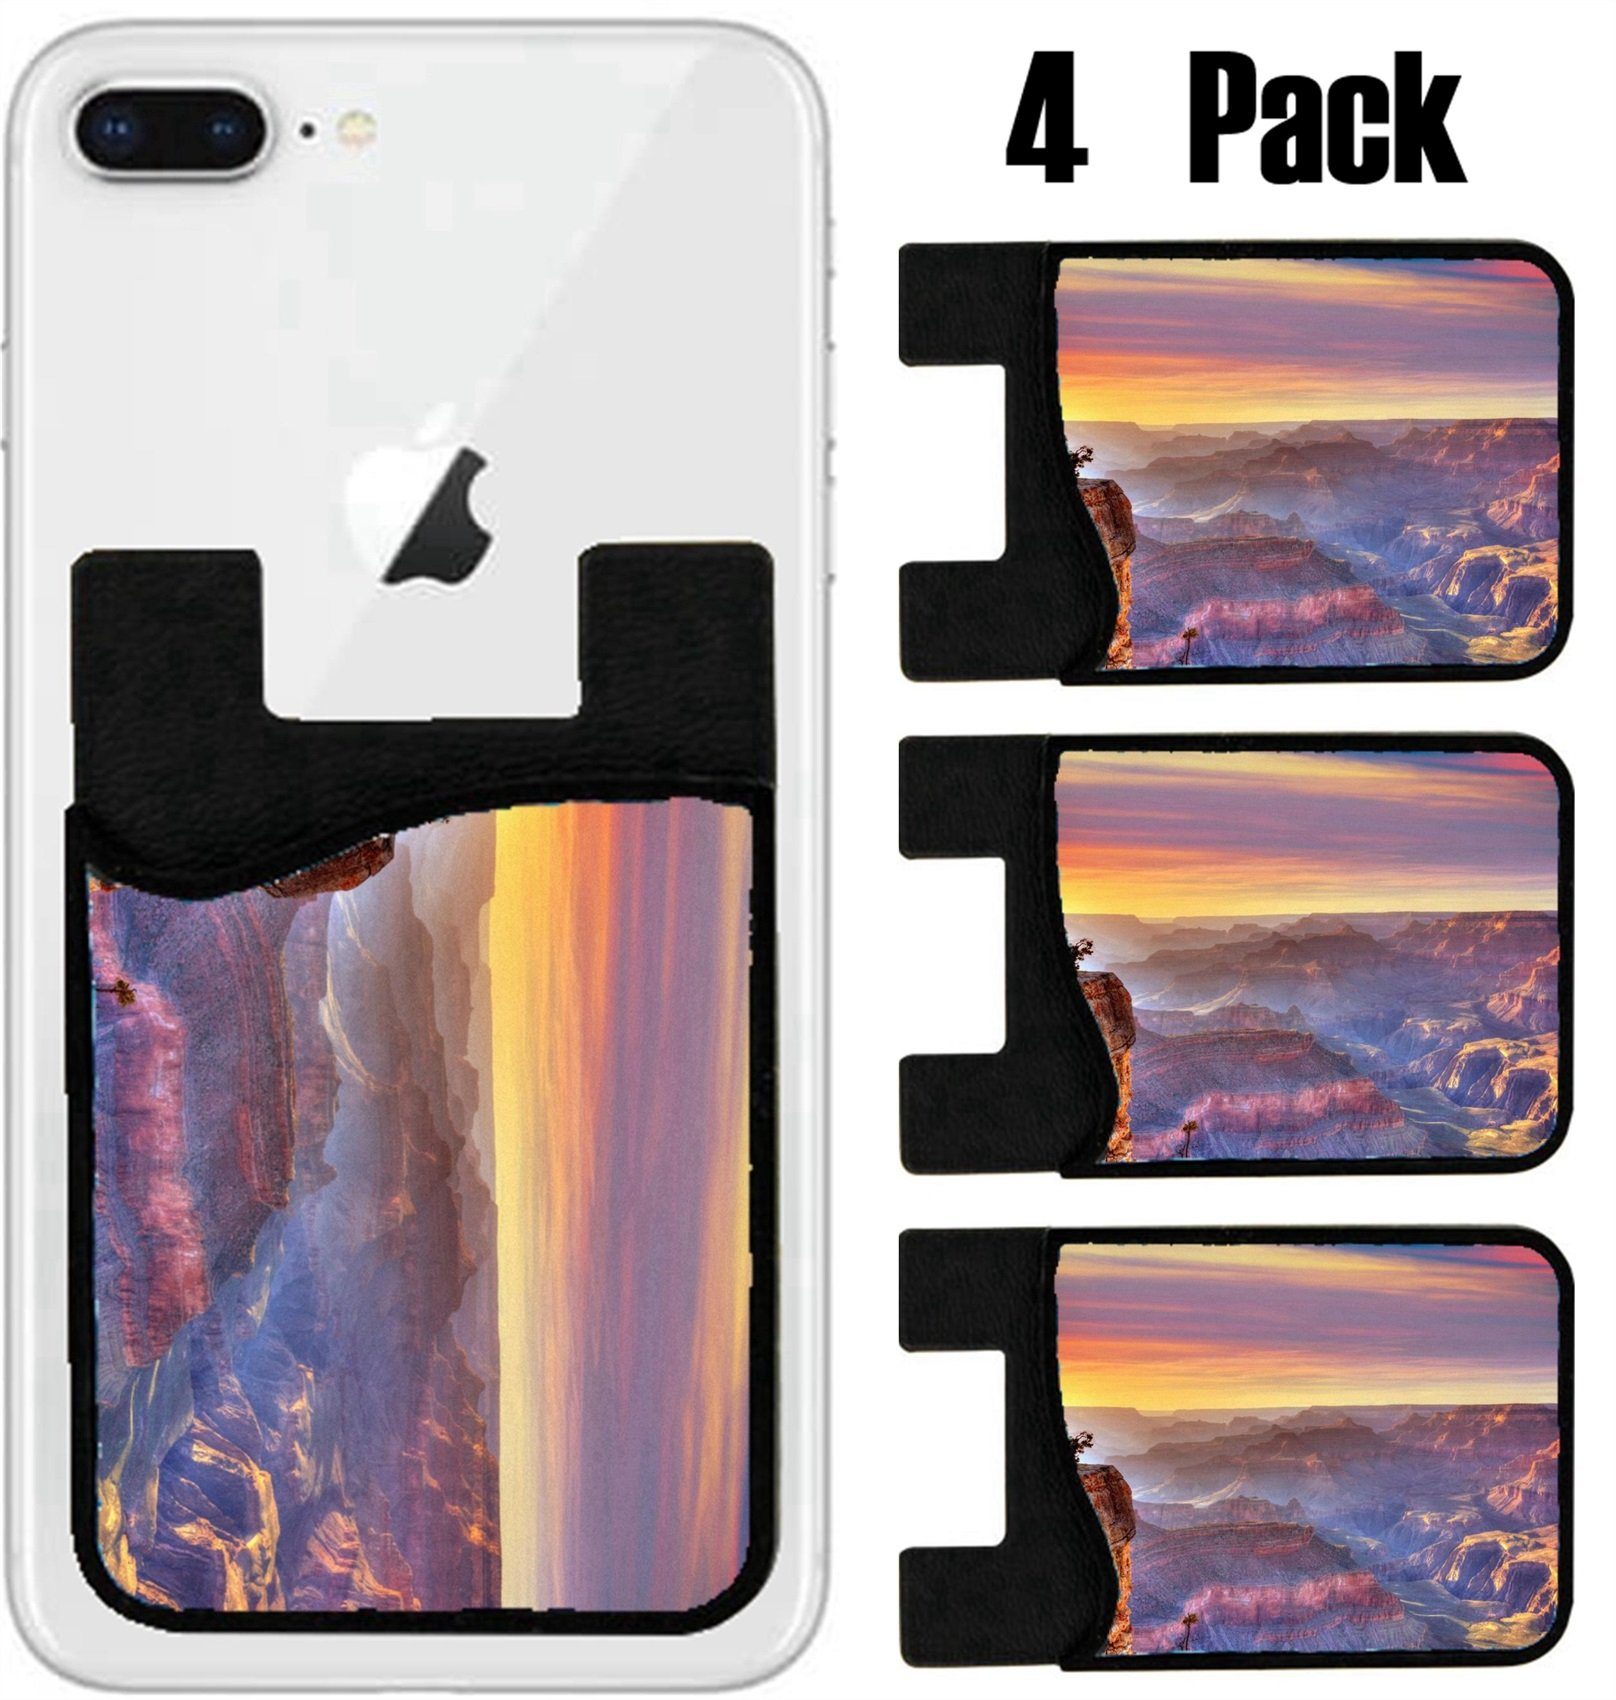 MSD Phone Card holder, sleeve/wallet for iPhone Samsung Android and all smartphones with removable microfiber screen cleaner Silicone card Caddy(4 Pack) Arizona sunset Grand Canyon National Park Yavap